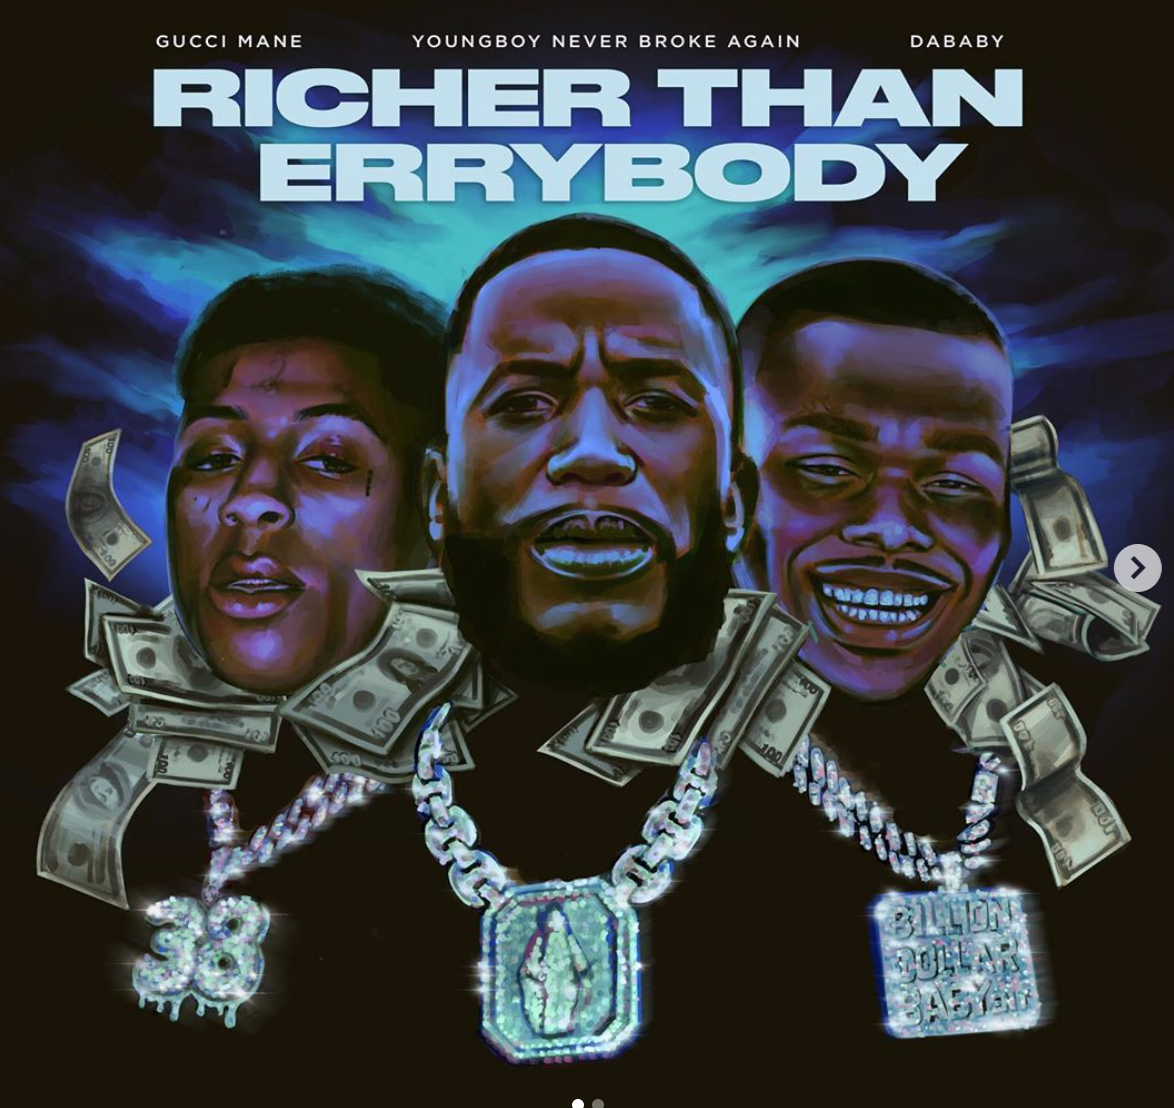 """Gucci Mane Releases New Single """"Richer Than Errybody"""" Featuring NBA Youngboy & Da Baby! [LISTEN]"""